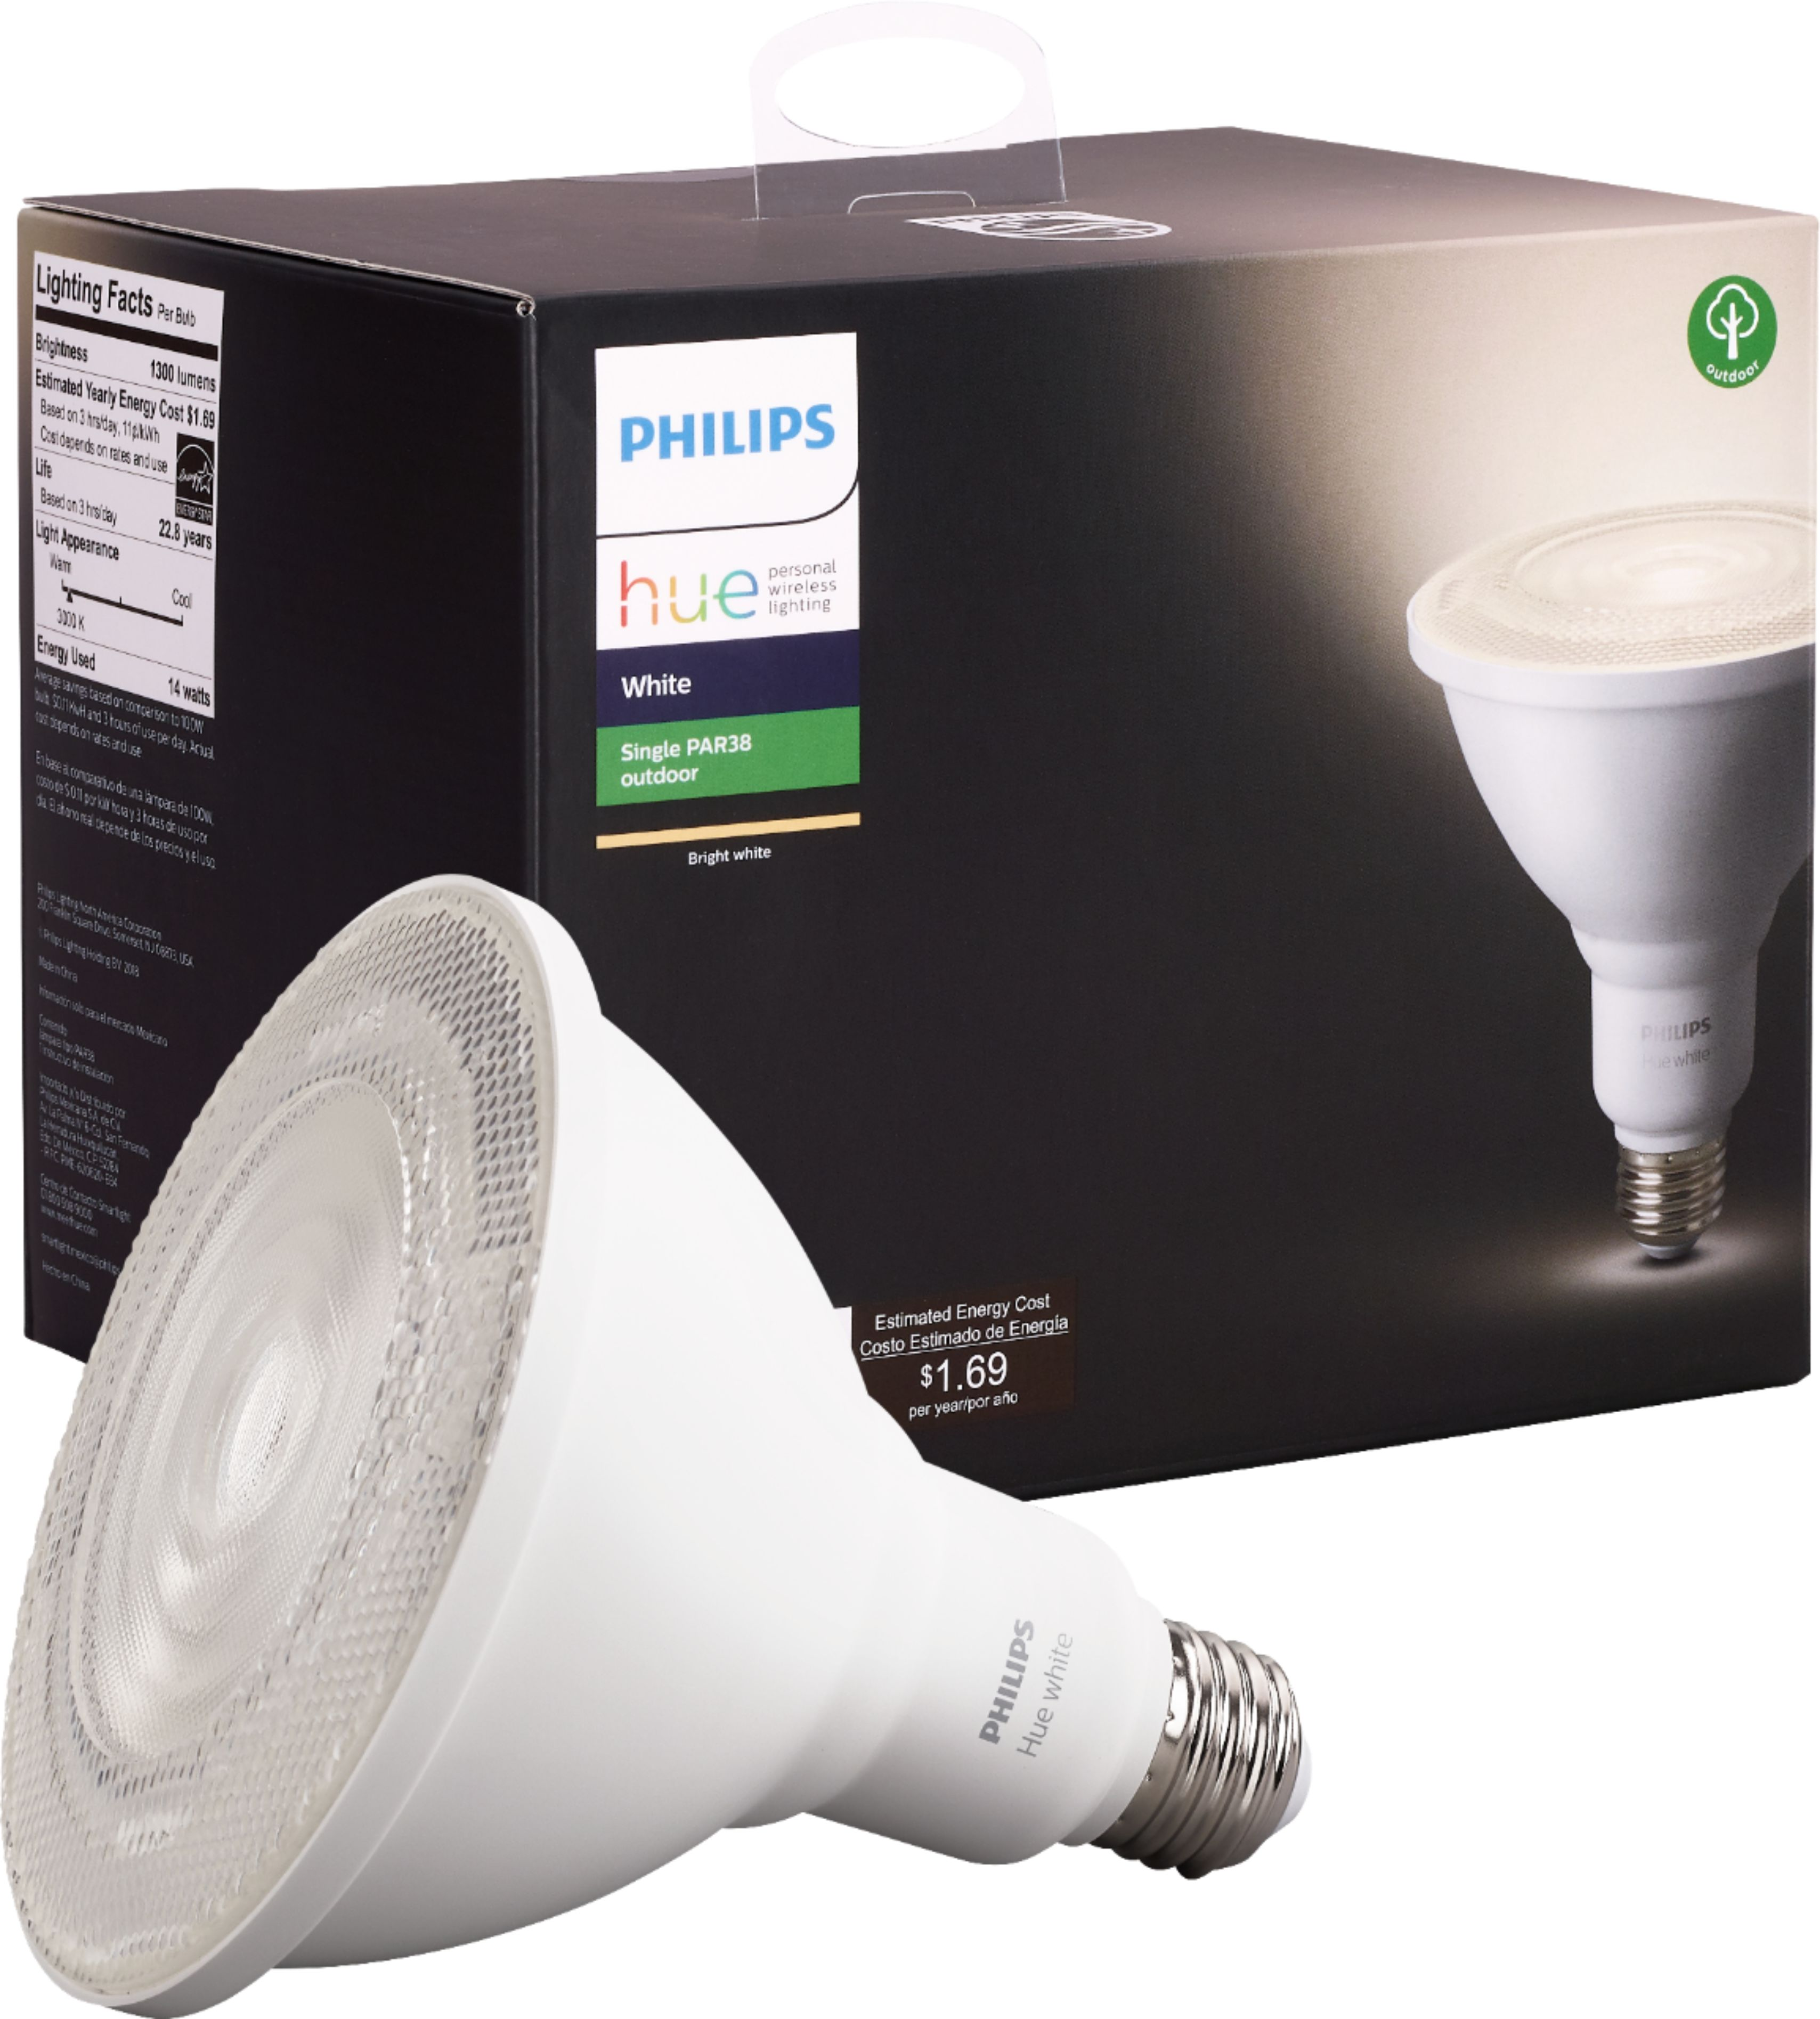 Bright Light Philips Philips Outdoor Hue White Par 38 Smart Led Bulb White